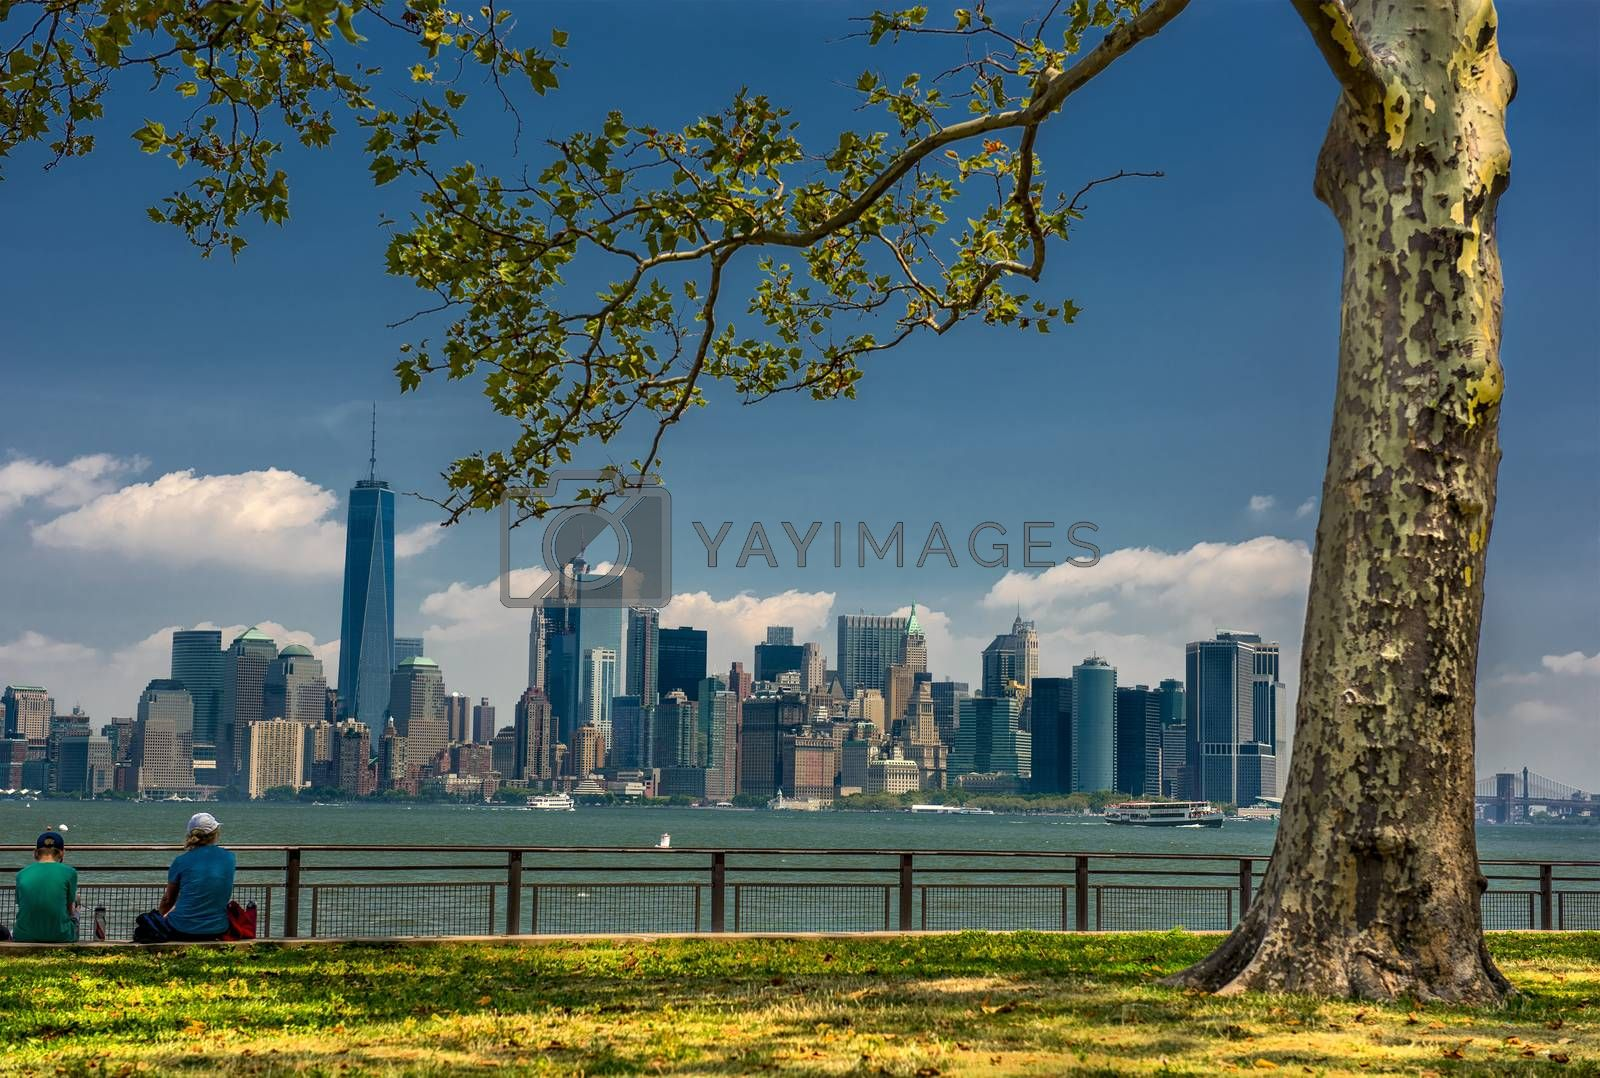 NY Sky panorama from the lberty island